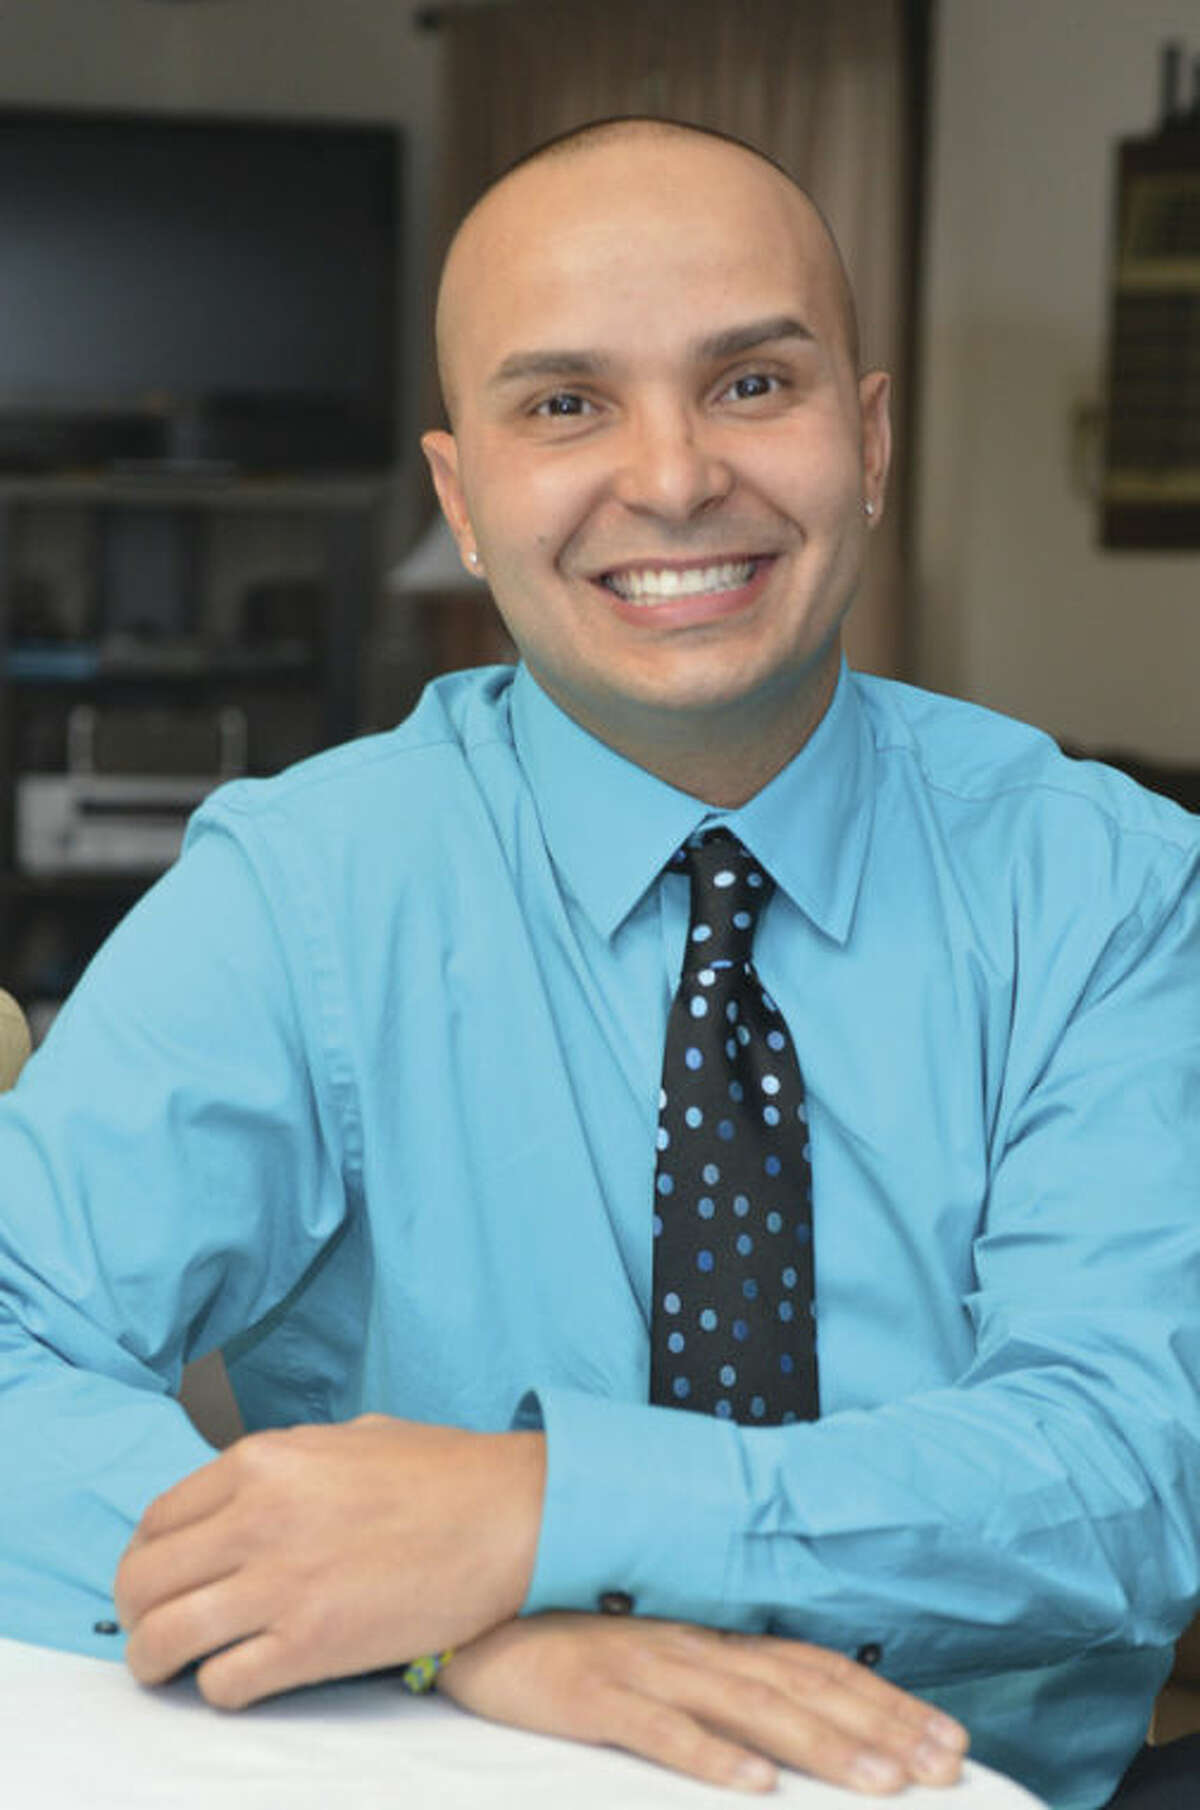 Hour Photo/Alex von Kleydorff Andres Roman is running for a seat on the Norwalk Board of Education.